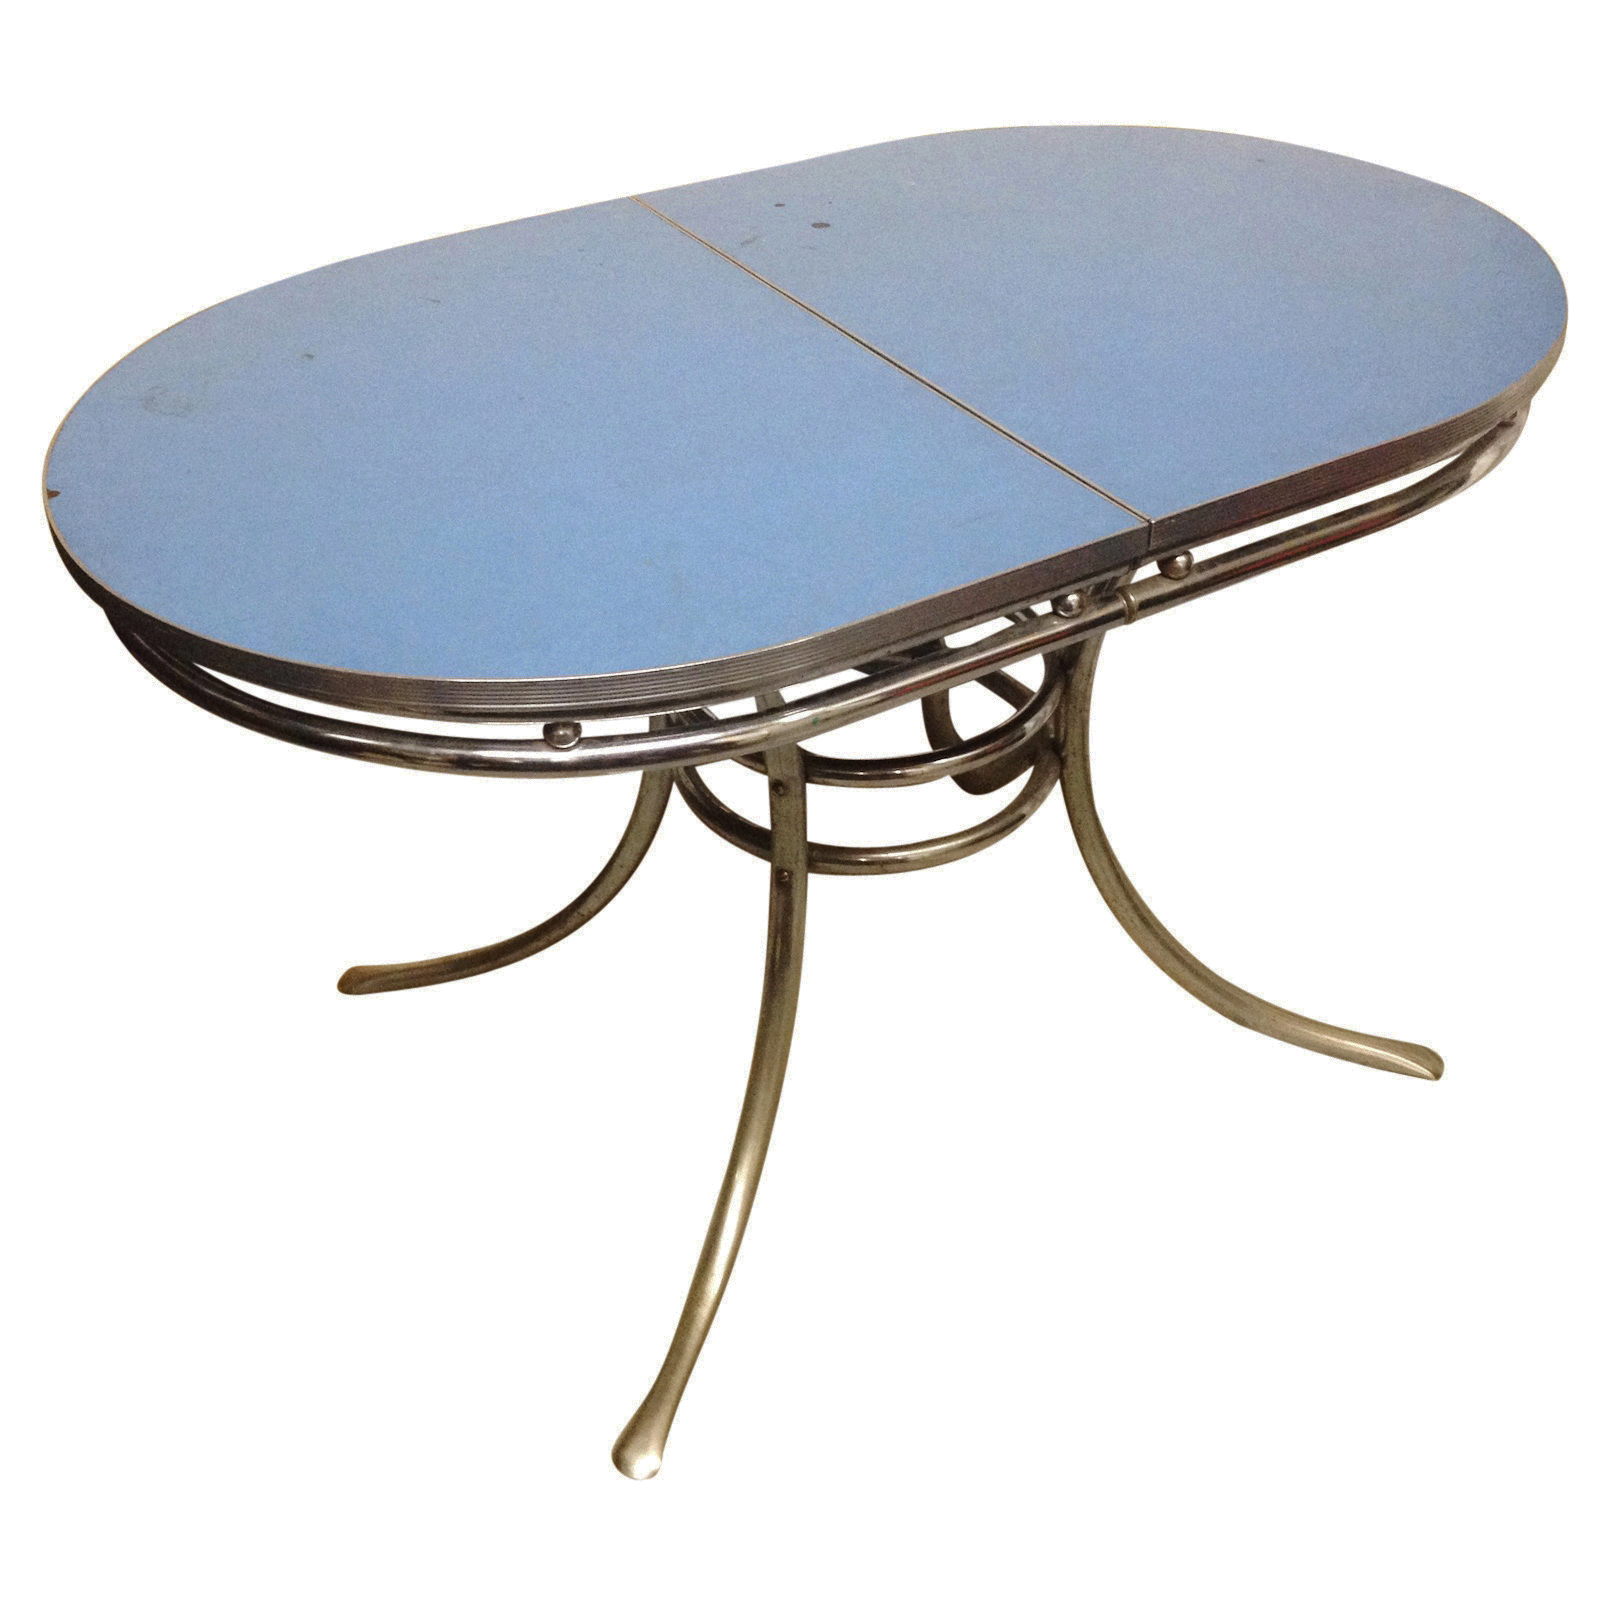 Vintage 1950s Chrome & Sky Blue Formica Table | Chairish